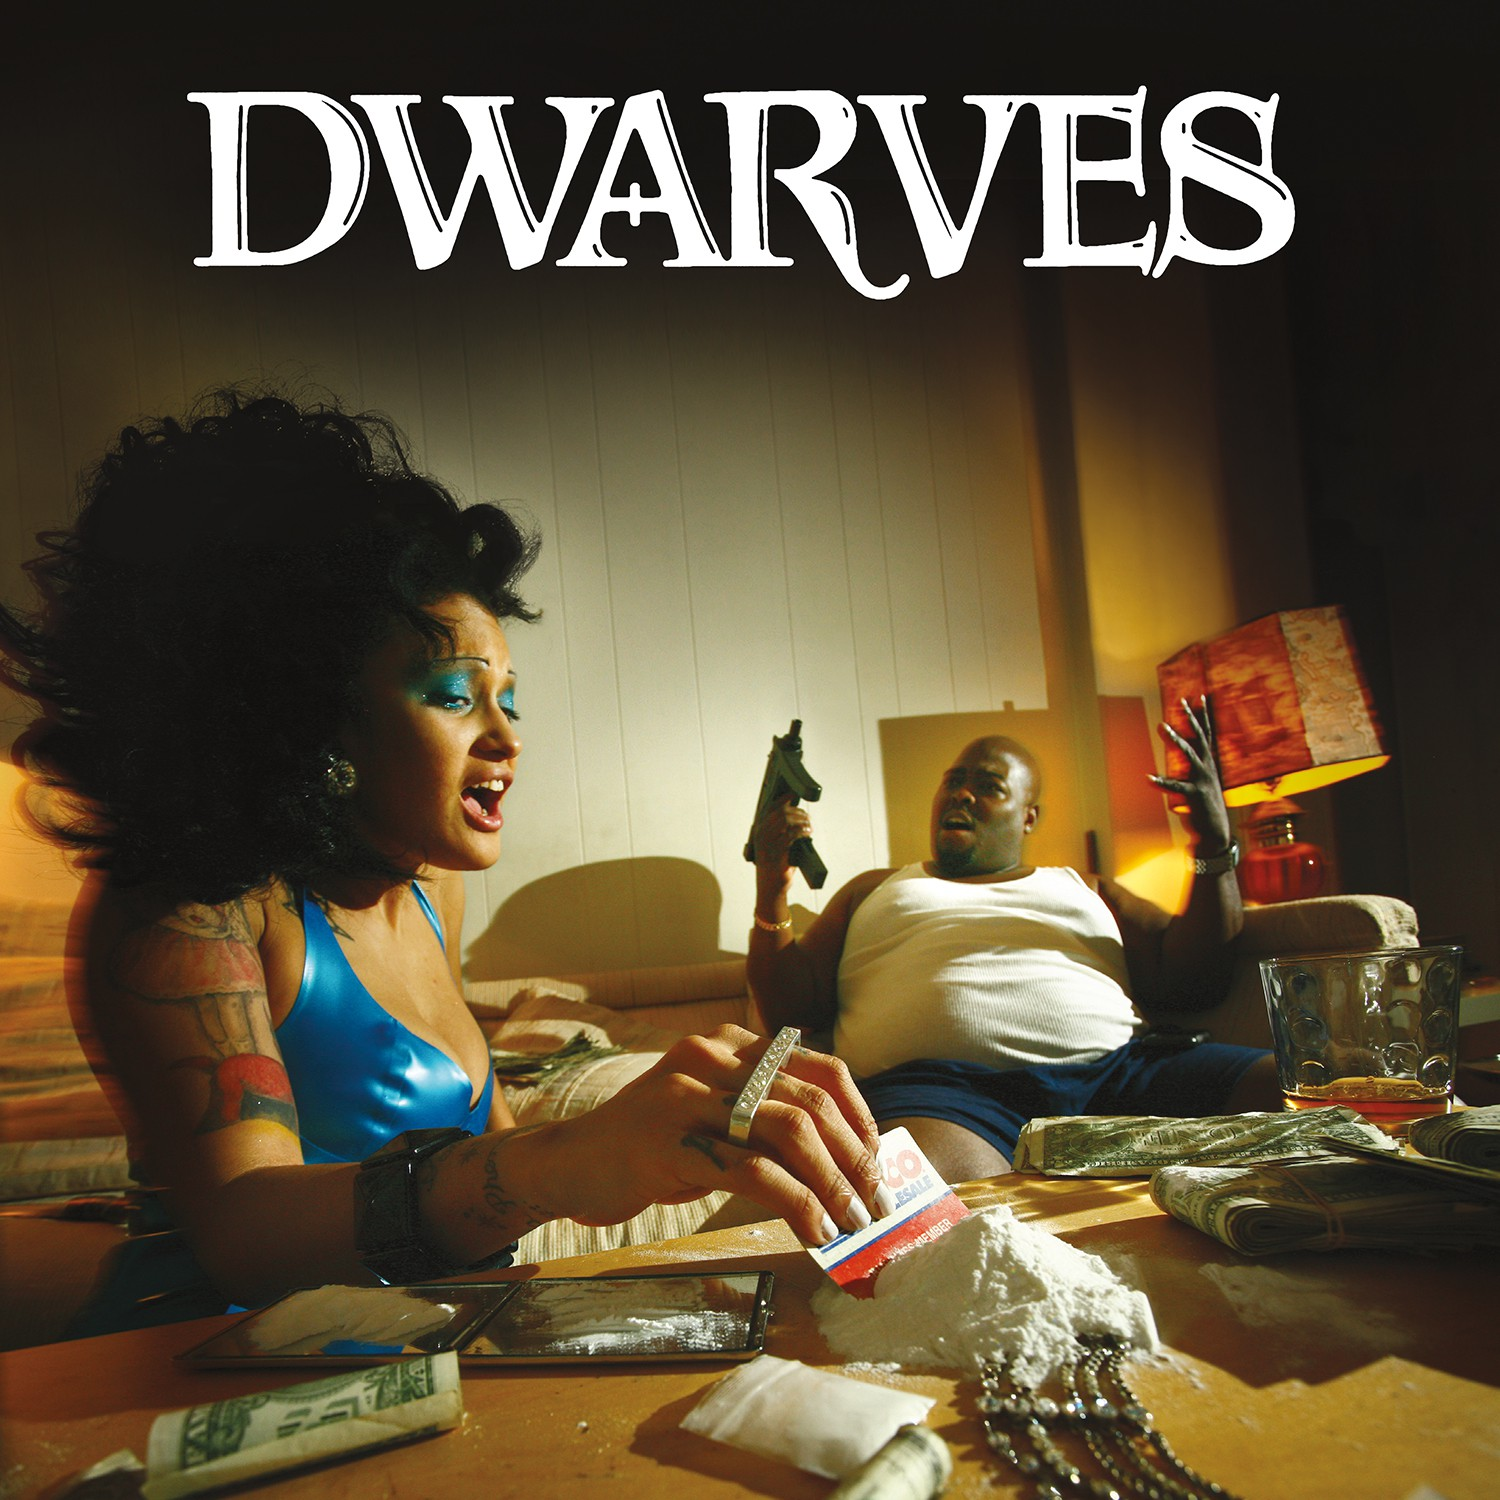 DWARVES Take Back The Night - Vinyl LP (black)